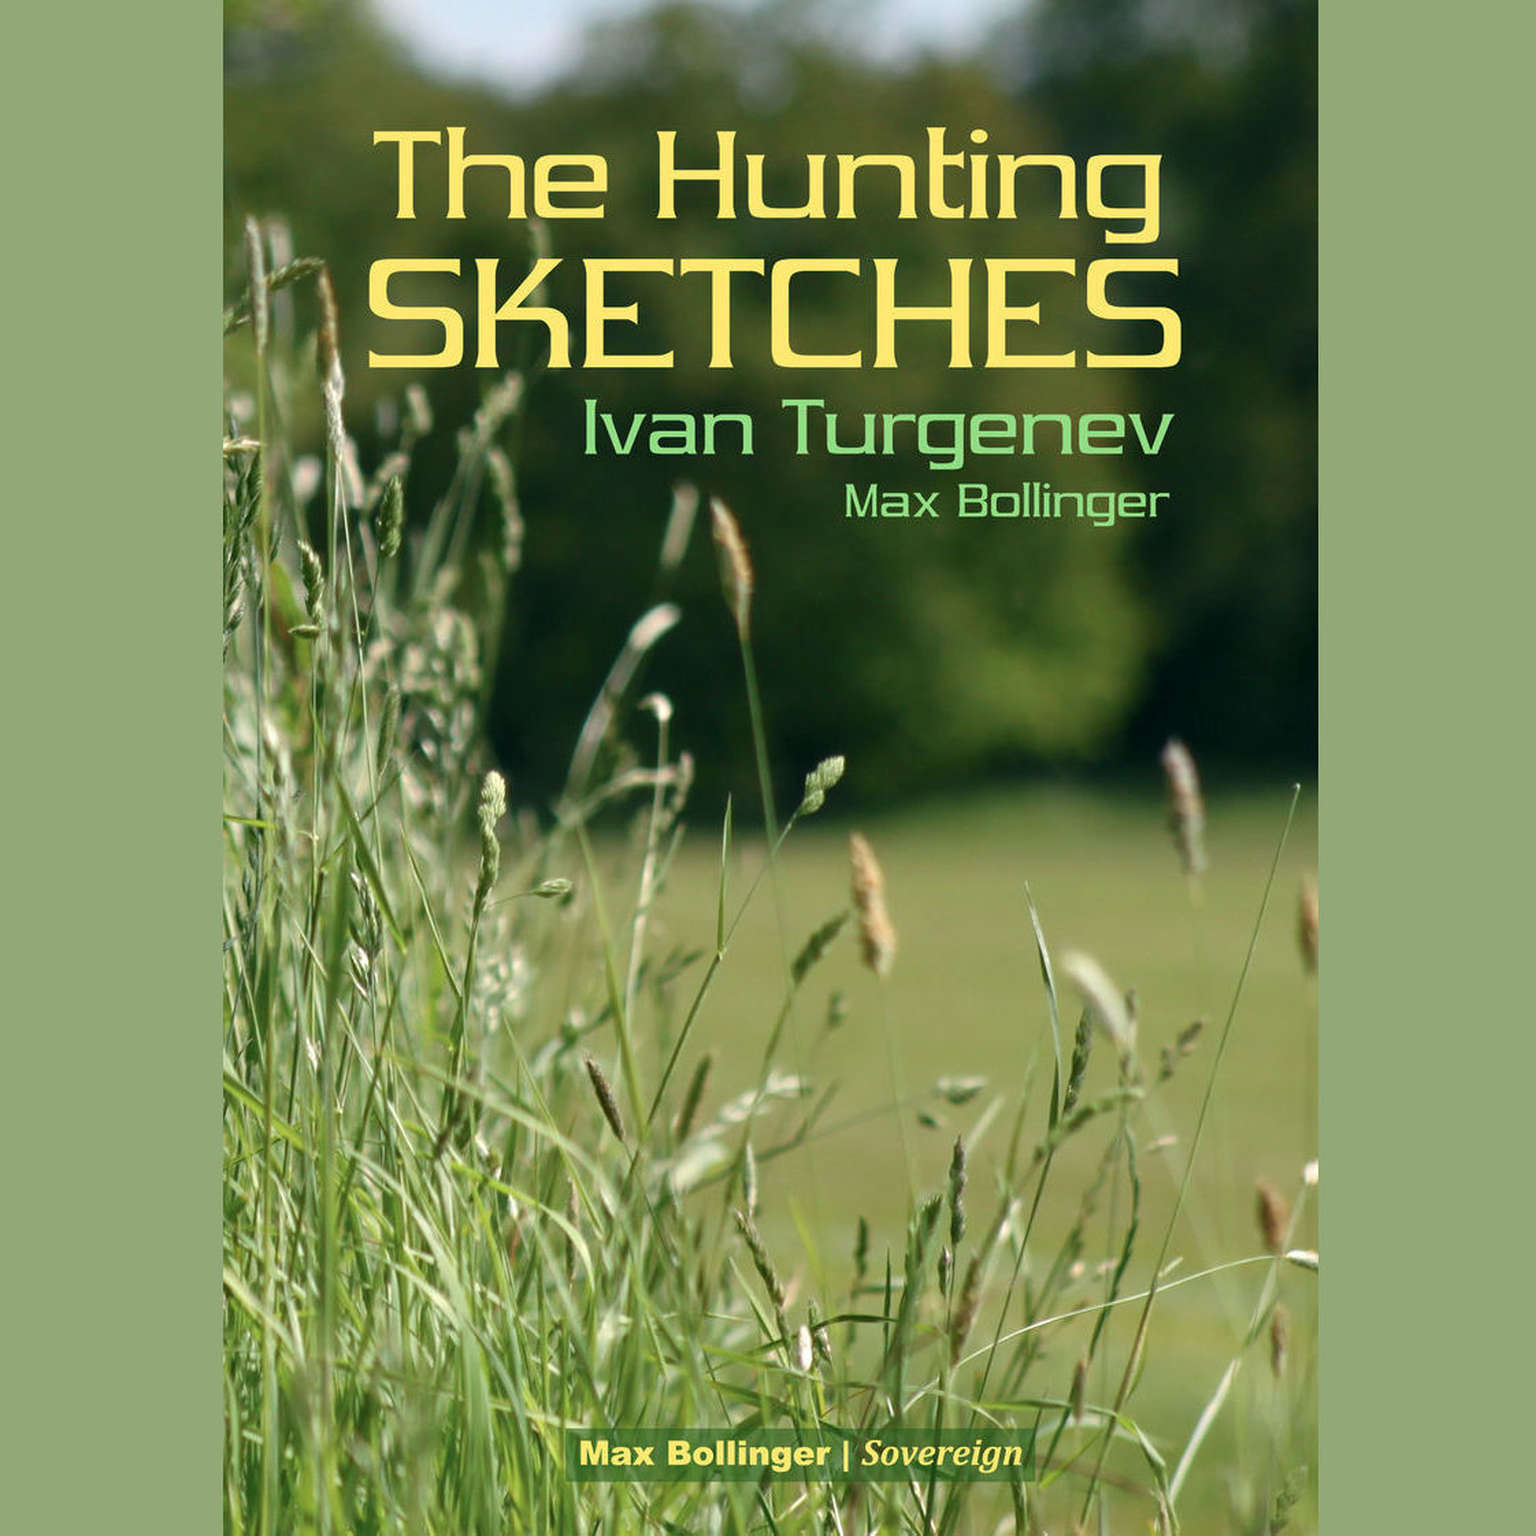 Printable The Hunting Sketches Volume 1: My Neighbour Radilov and Other Stories Audiobook Cover Art